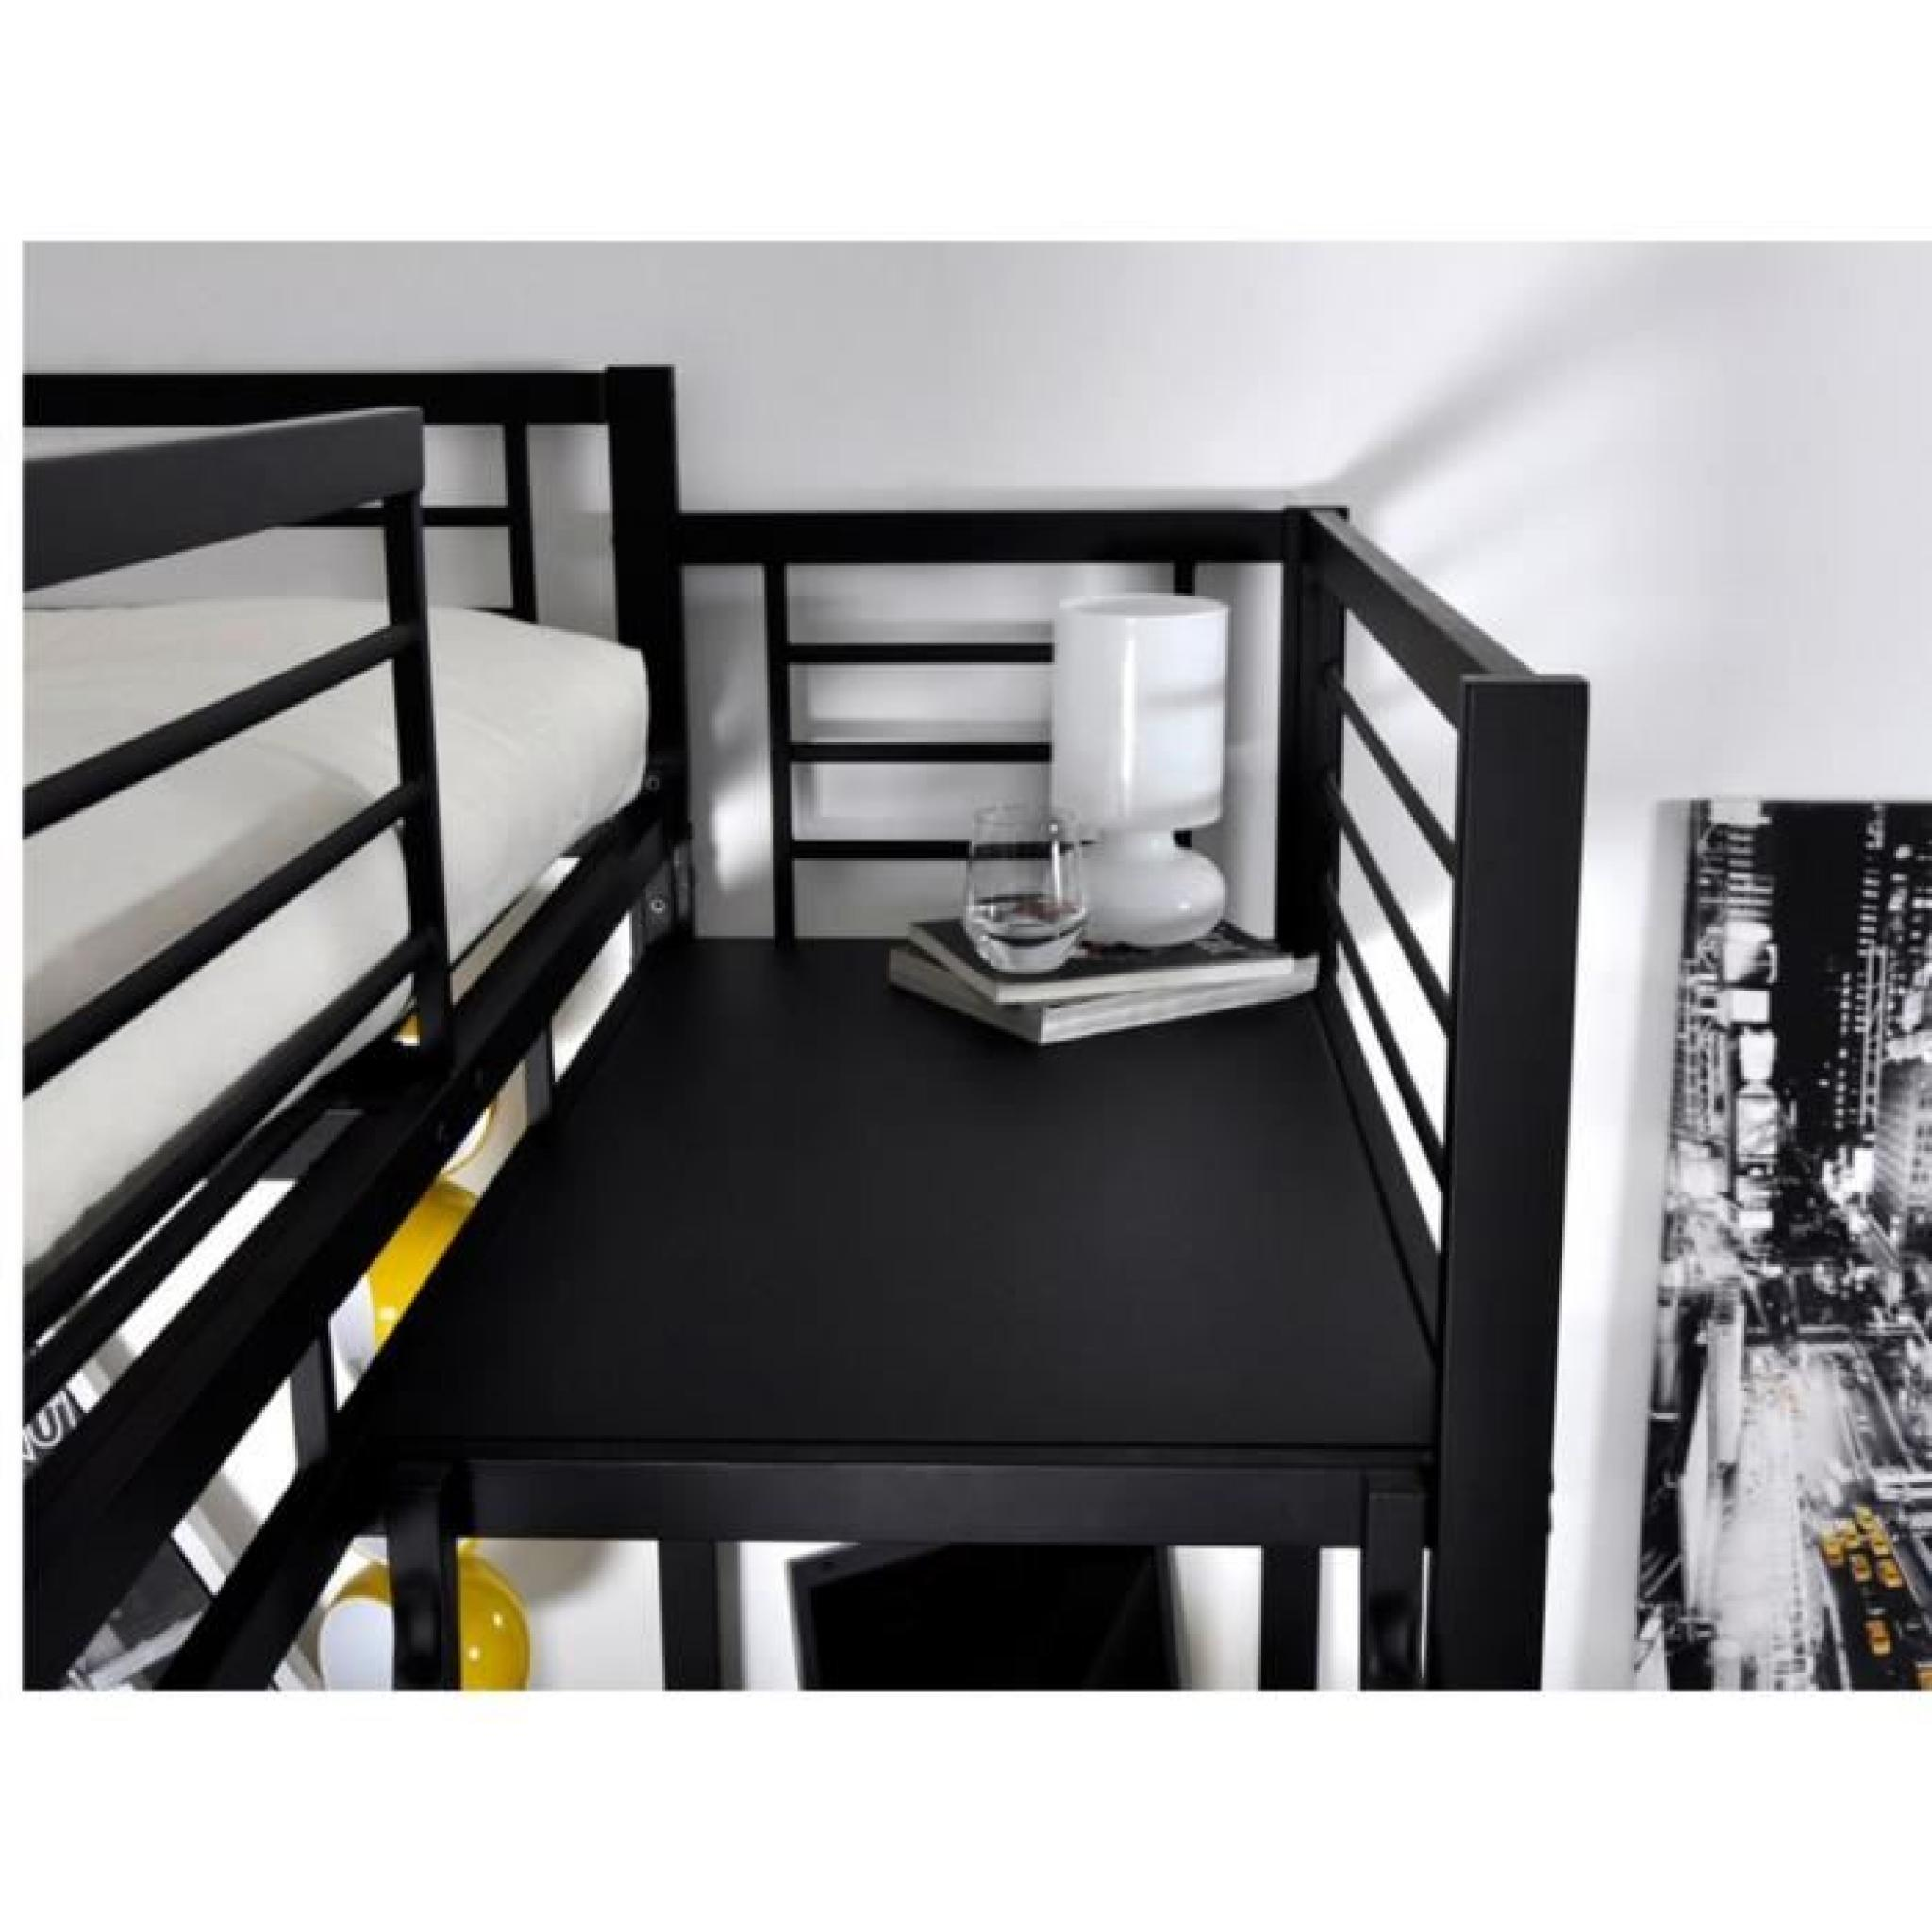 lit mezzanine pas cher maison design. Black Bedroom Furniture Sets. Home Design Ideas